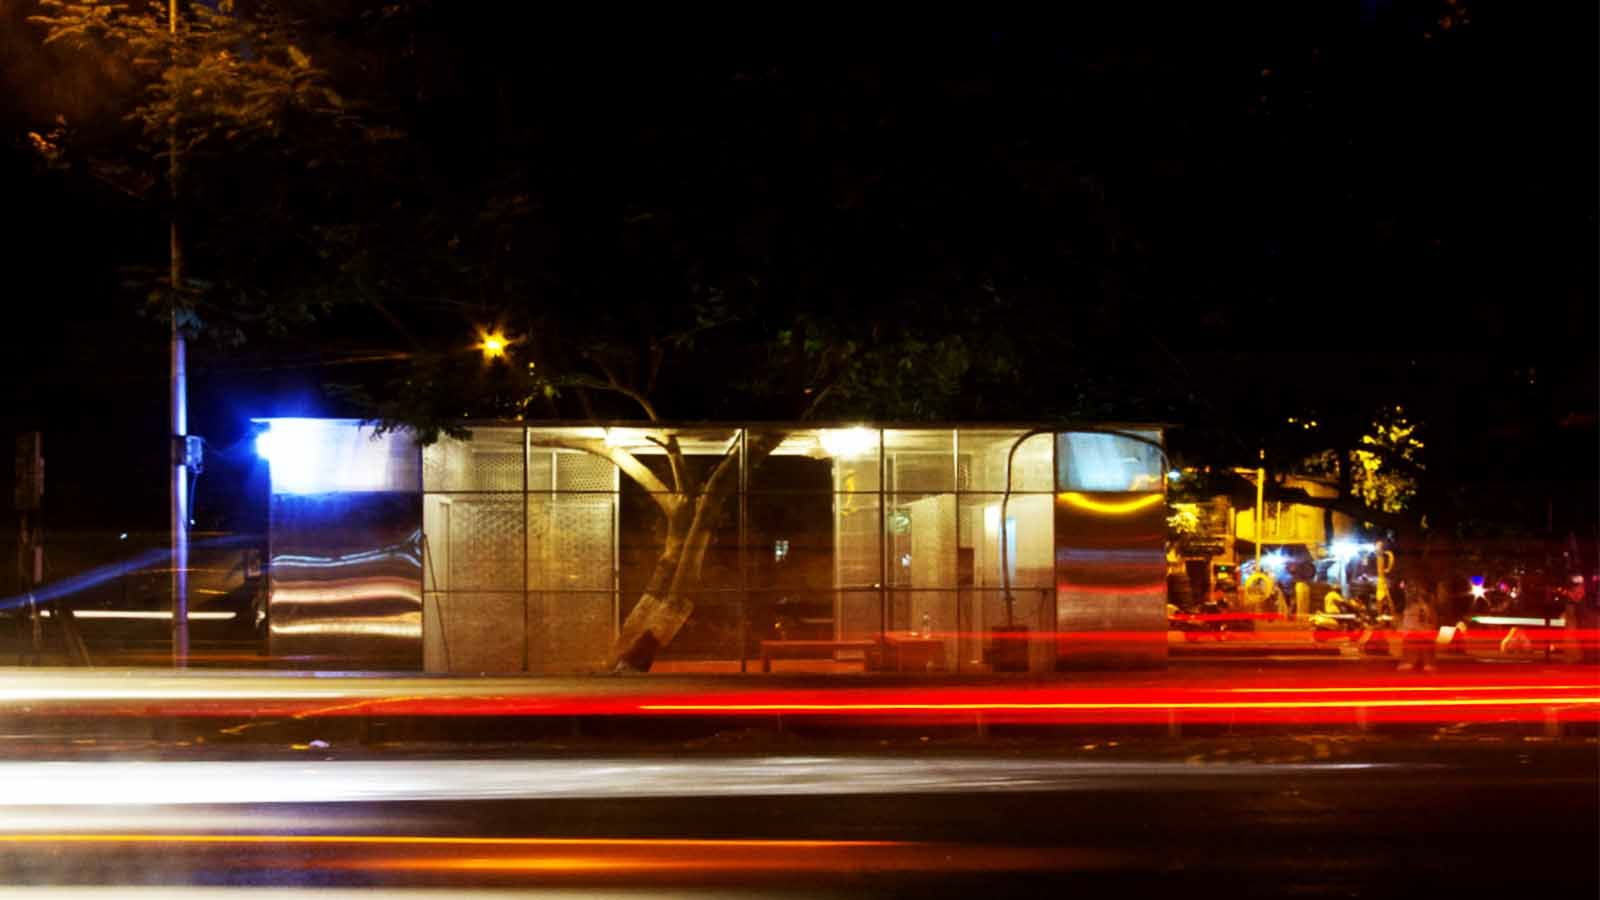 The Lightbox- restroom for women, Thane, RC Architects - Sheet5